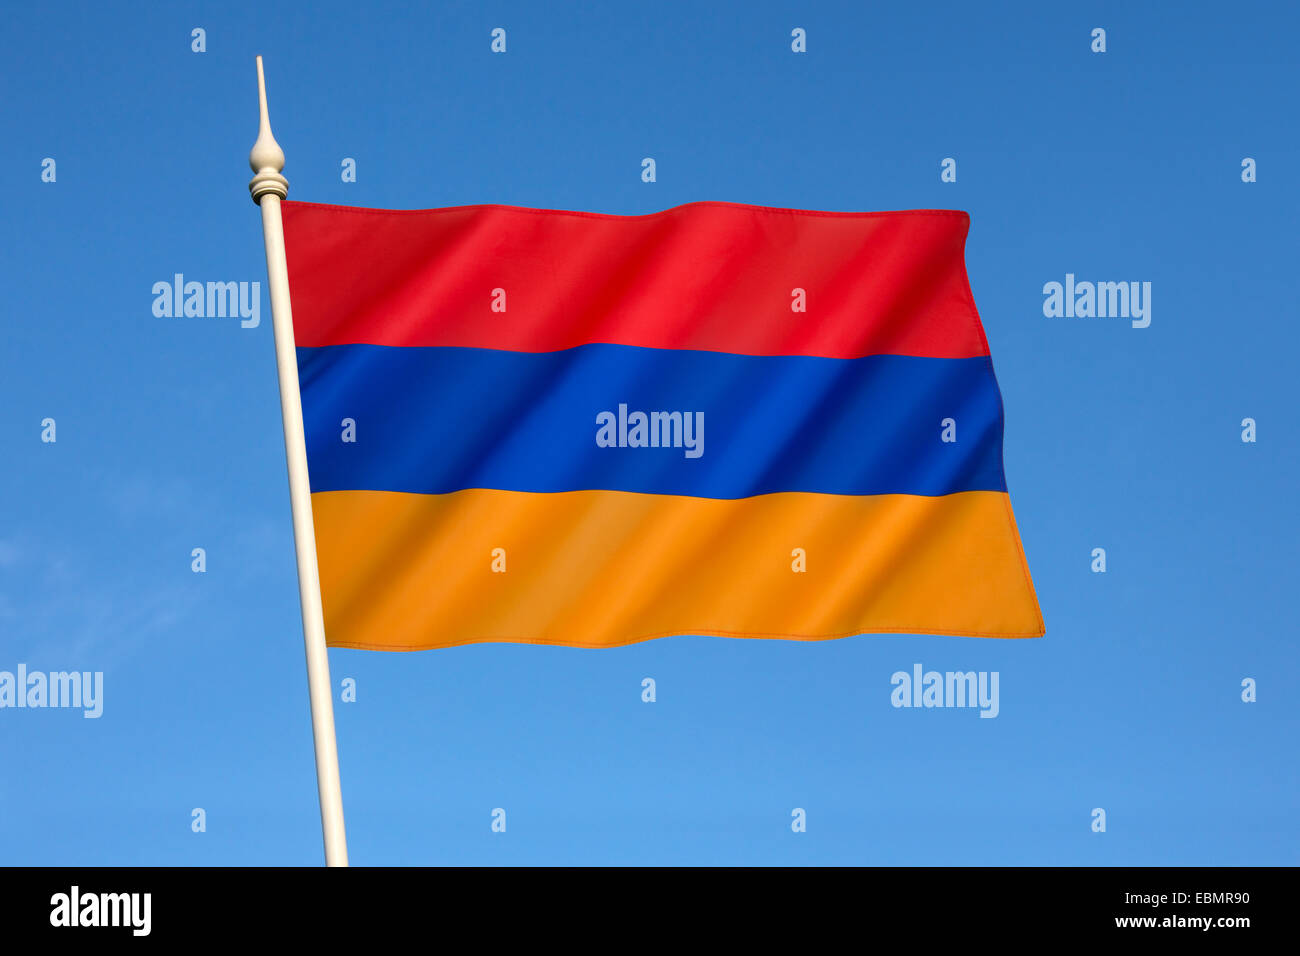 The national flag of Armenia, the Armenian Tricolor or Yeraguyn. - Stock Image